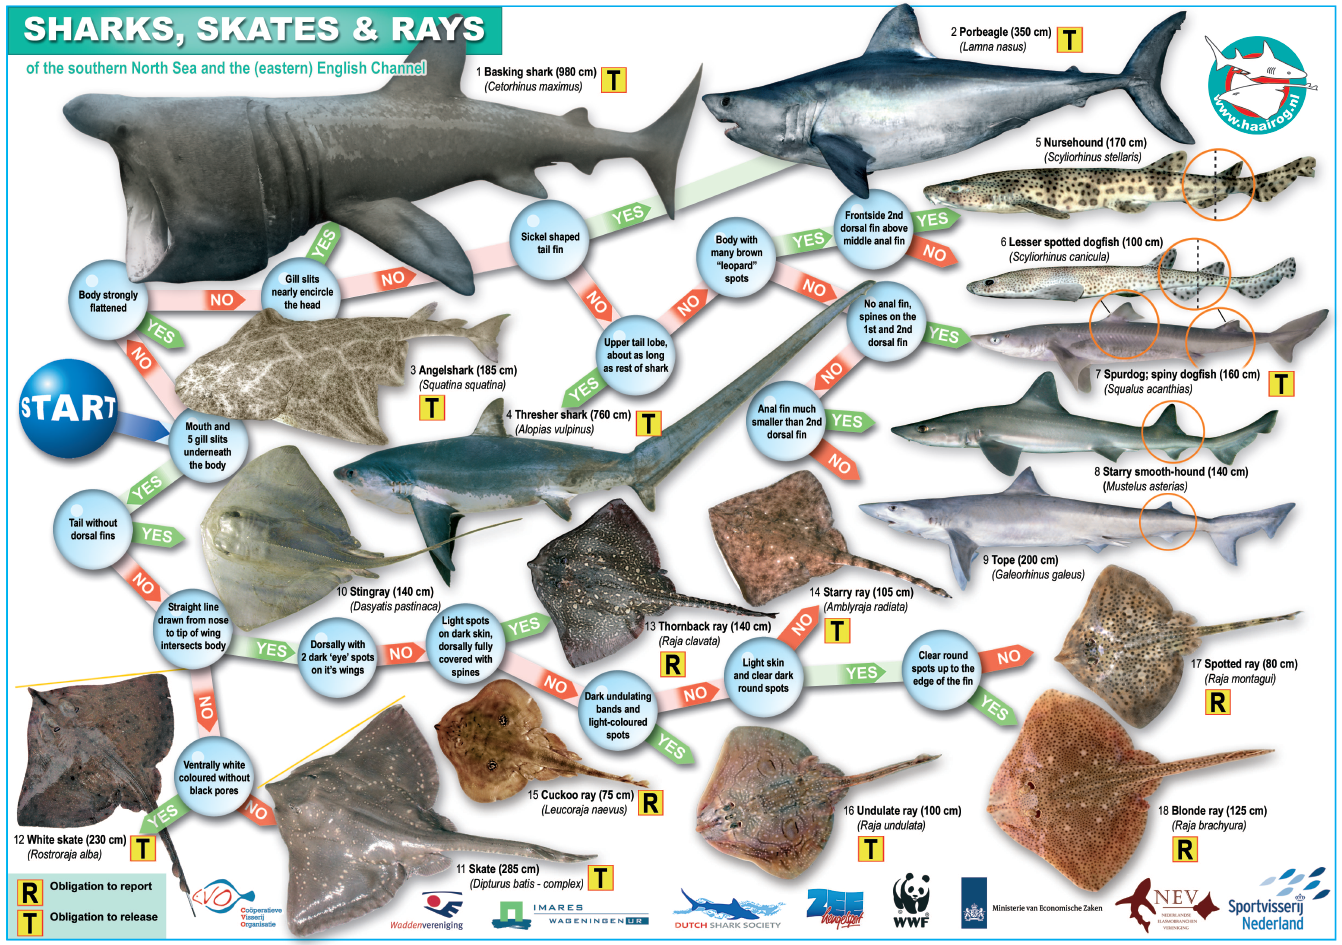 sharks skates and rays of the english channel and the southern